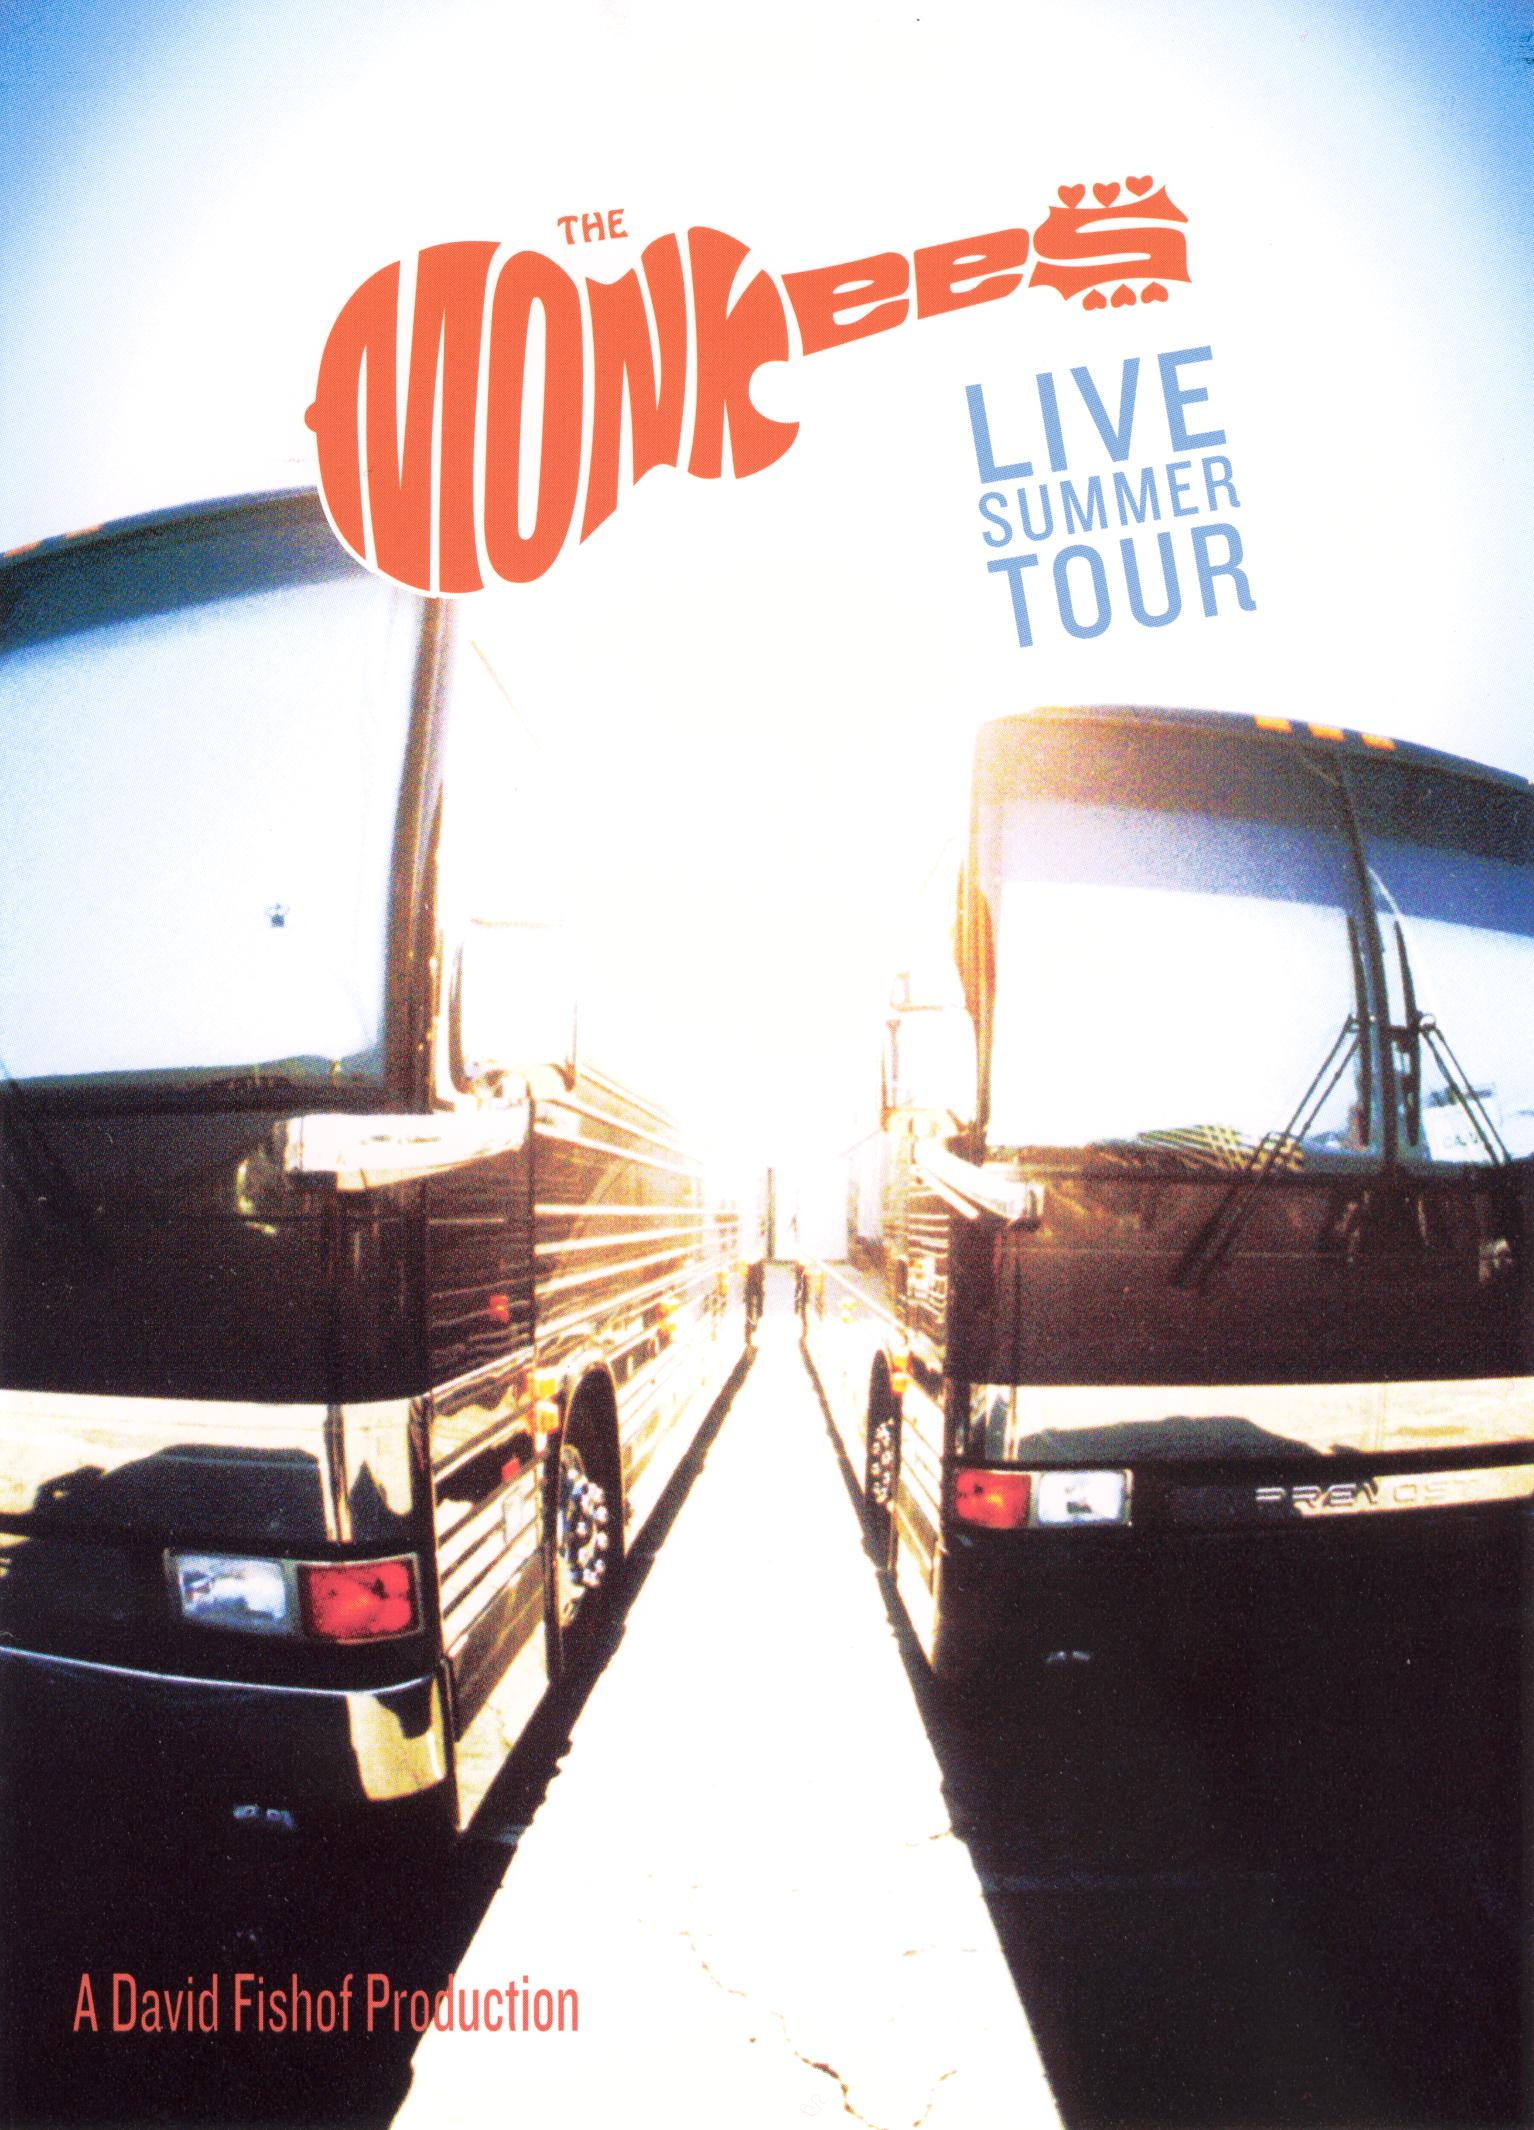 The Monkees: Live Summer Tour